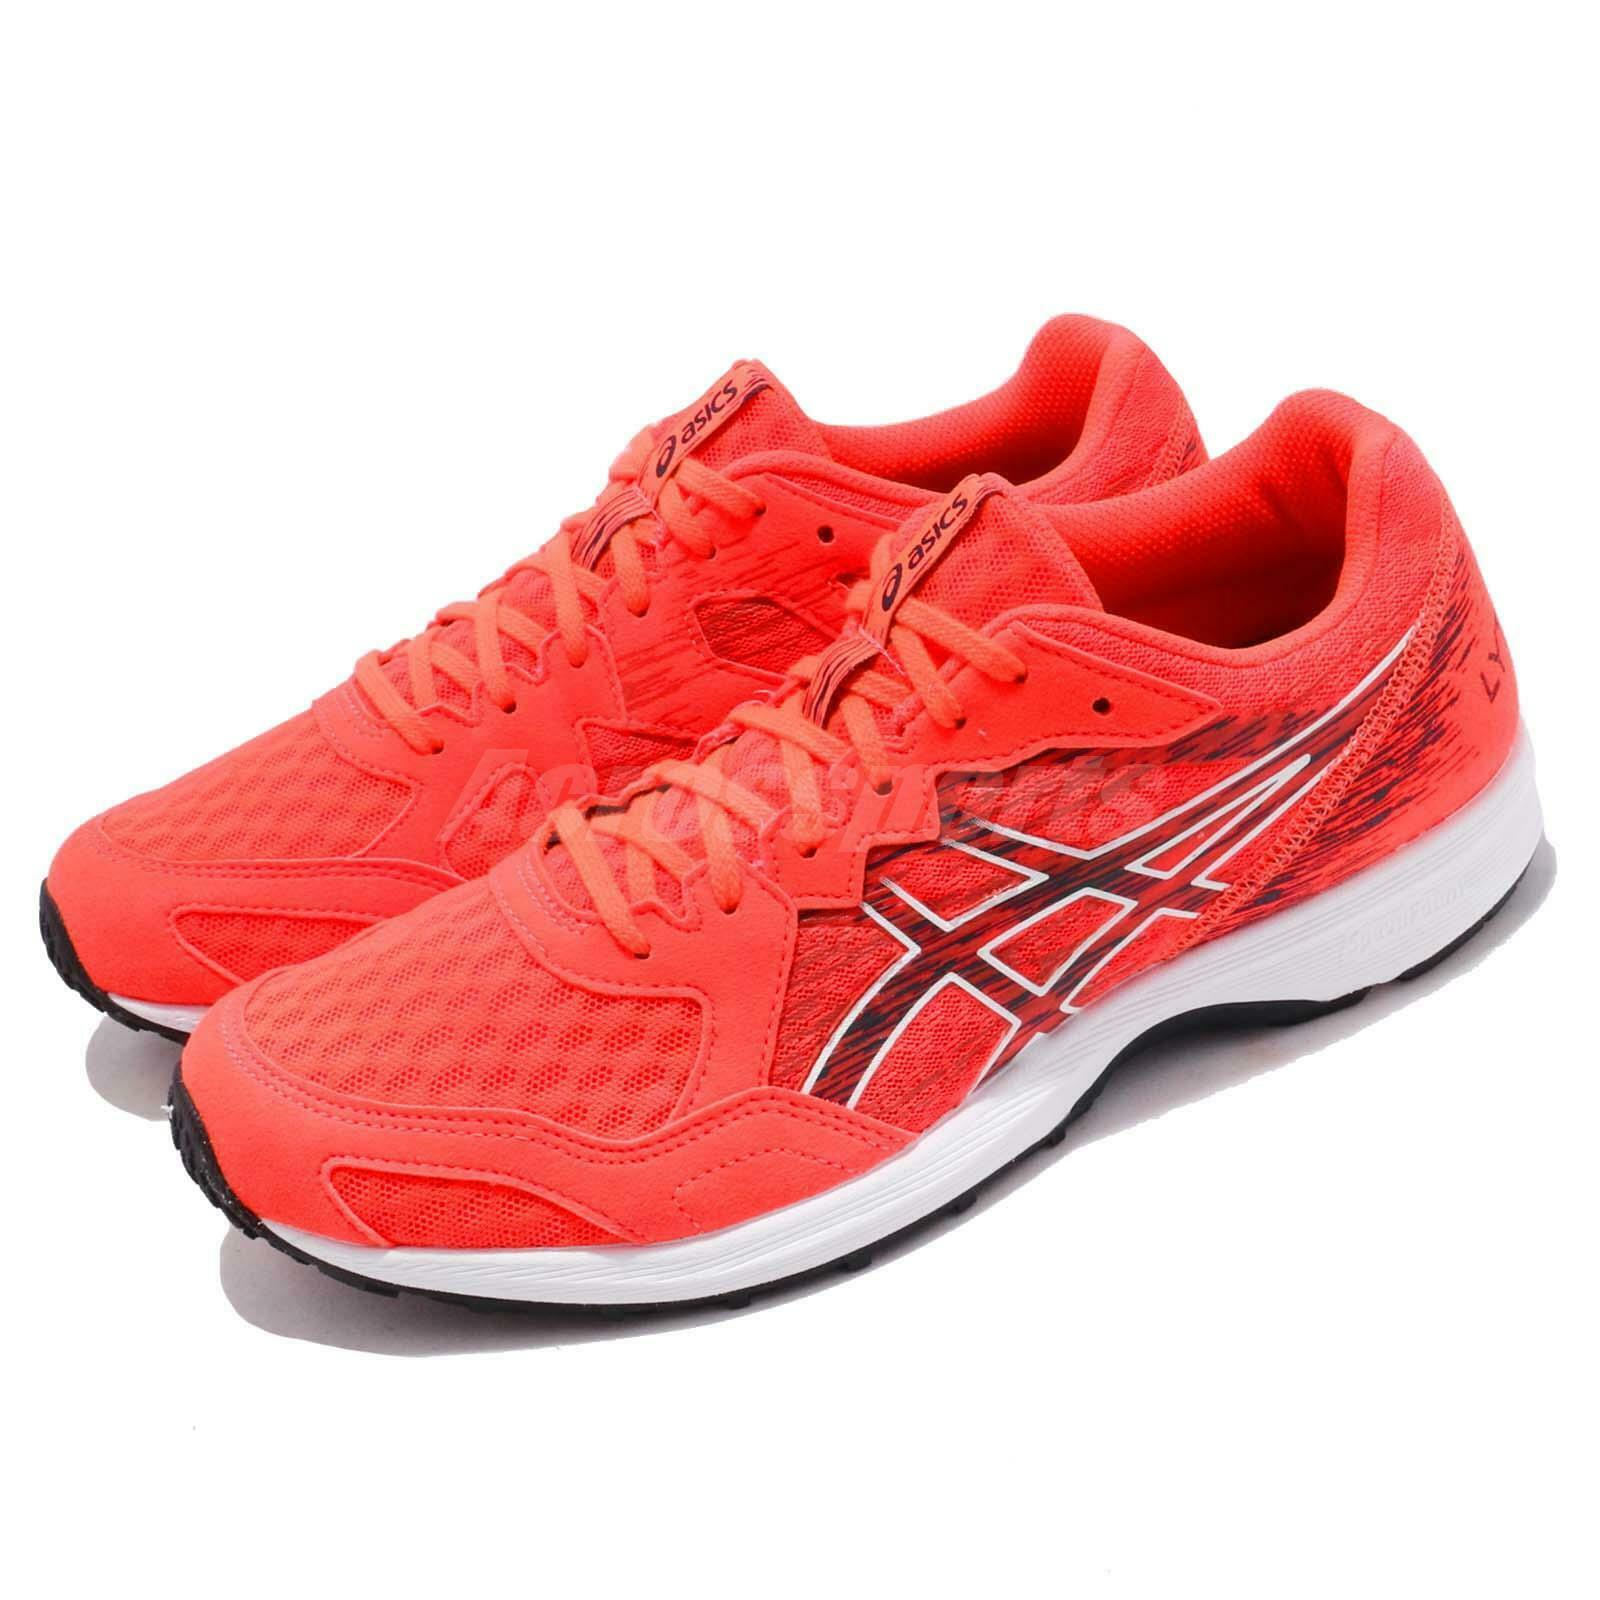 Asics Lyteracer 2 Flash Coral blanco Men Running zapatos zapatillas 1011A173-700